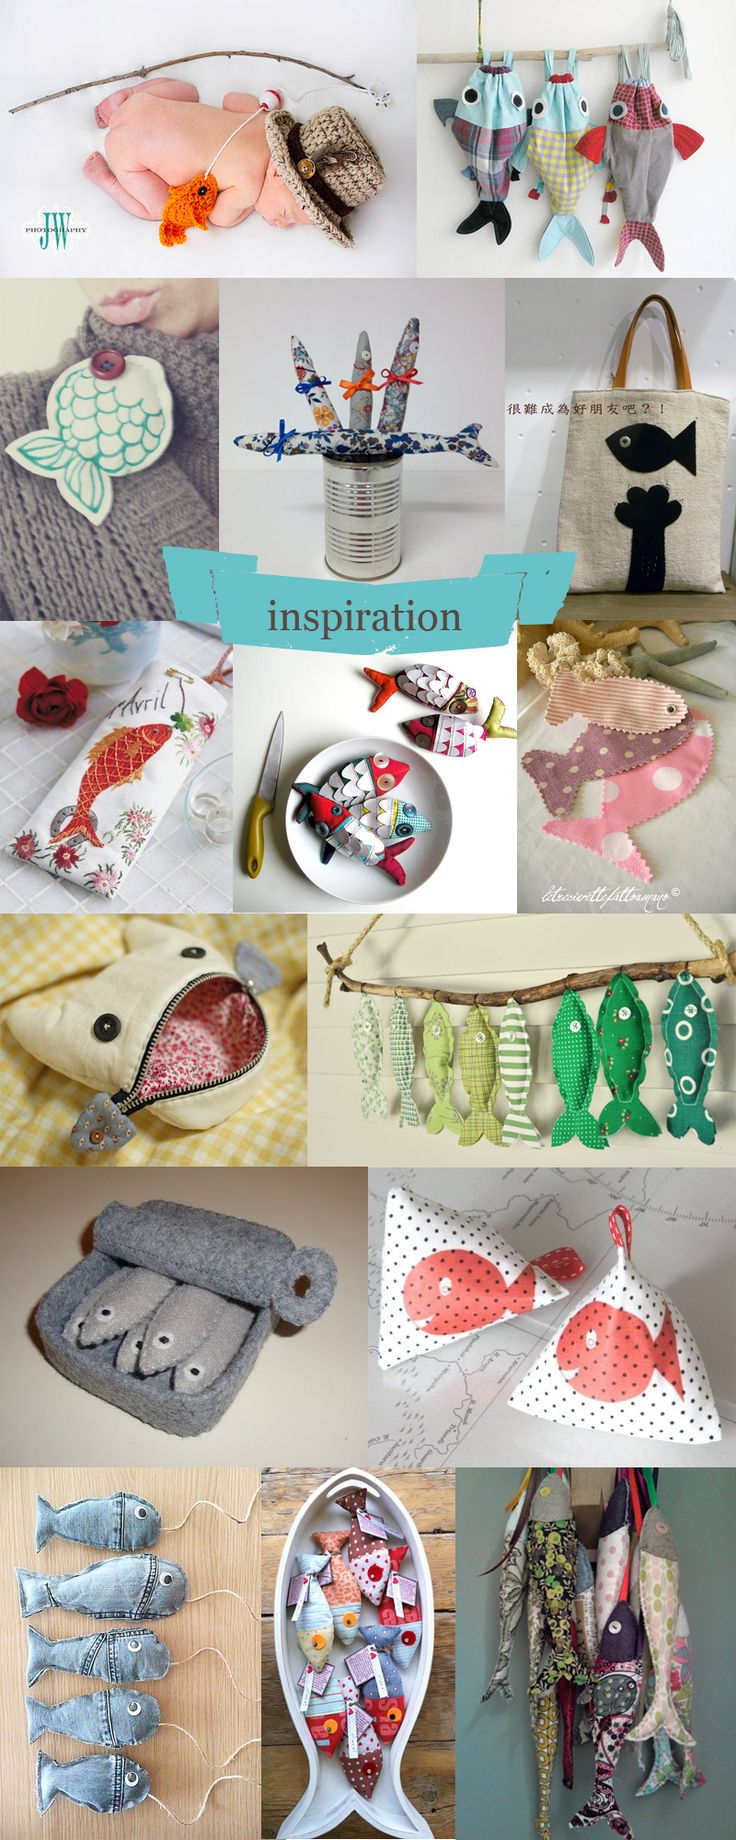 French April Fools' Day Custom: Le Poisson d'Avril…